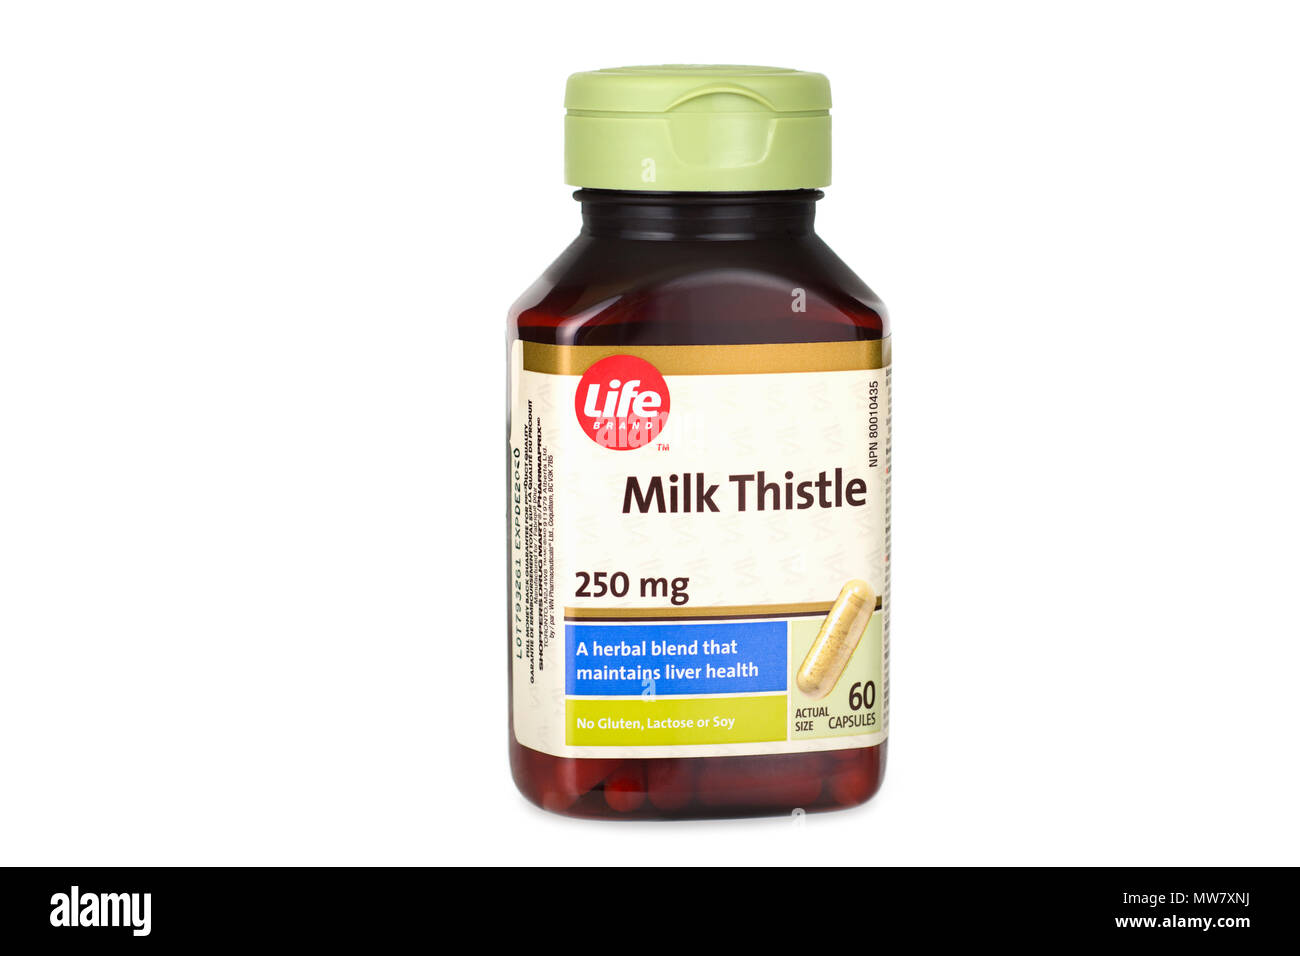 Milk Thistle Supplement, Bottle with Capsules, Tablets, Silybum, Silymarin - Stock Image